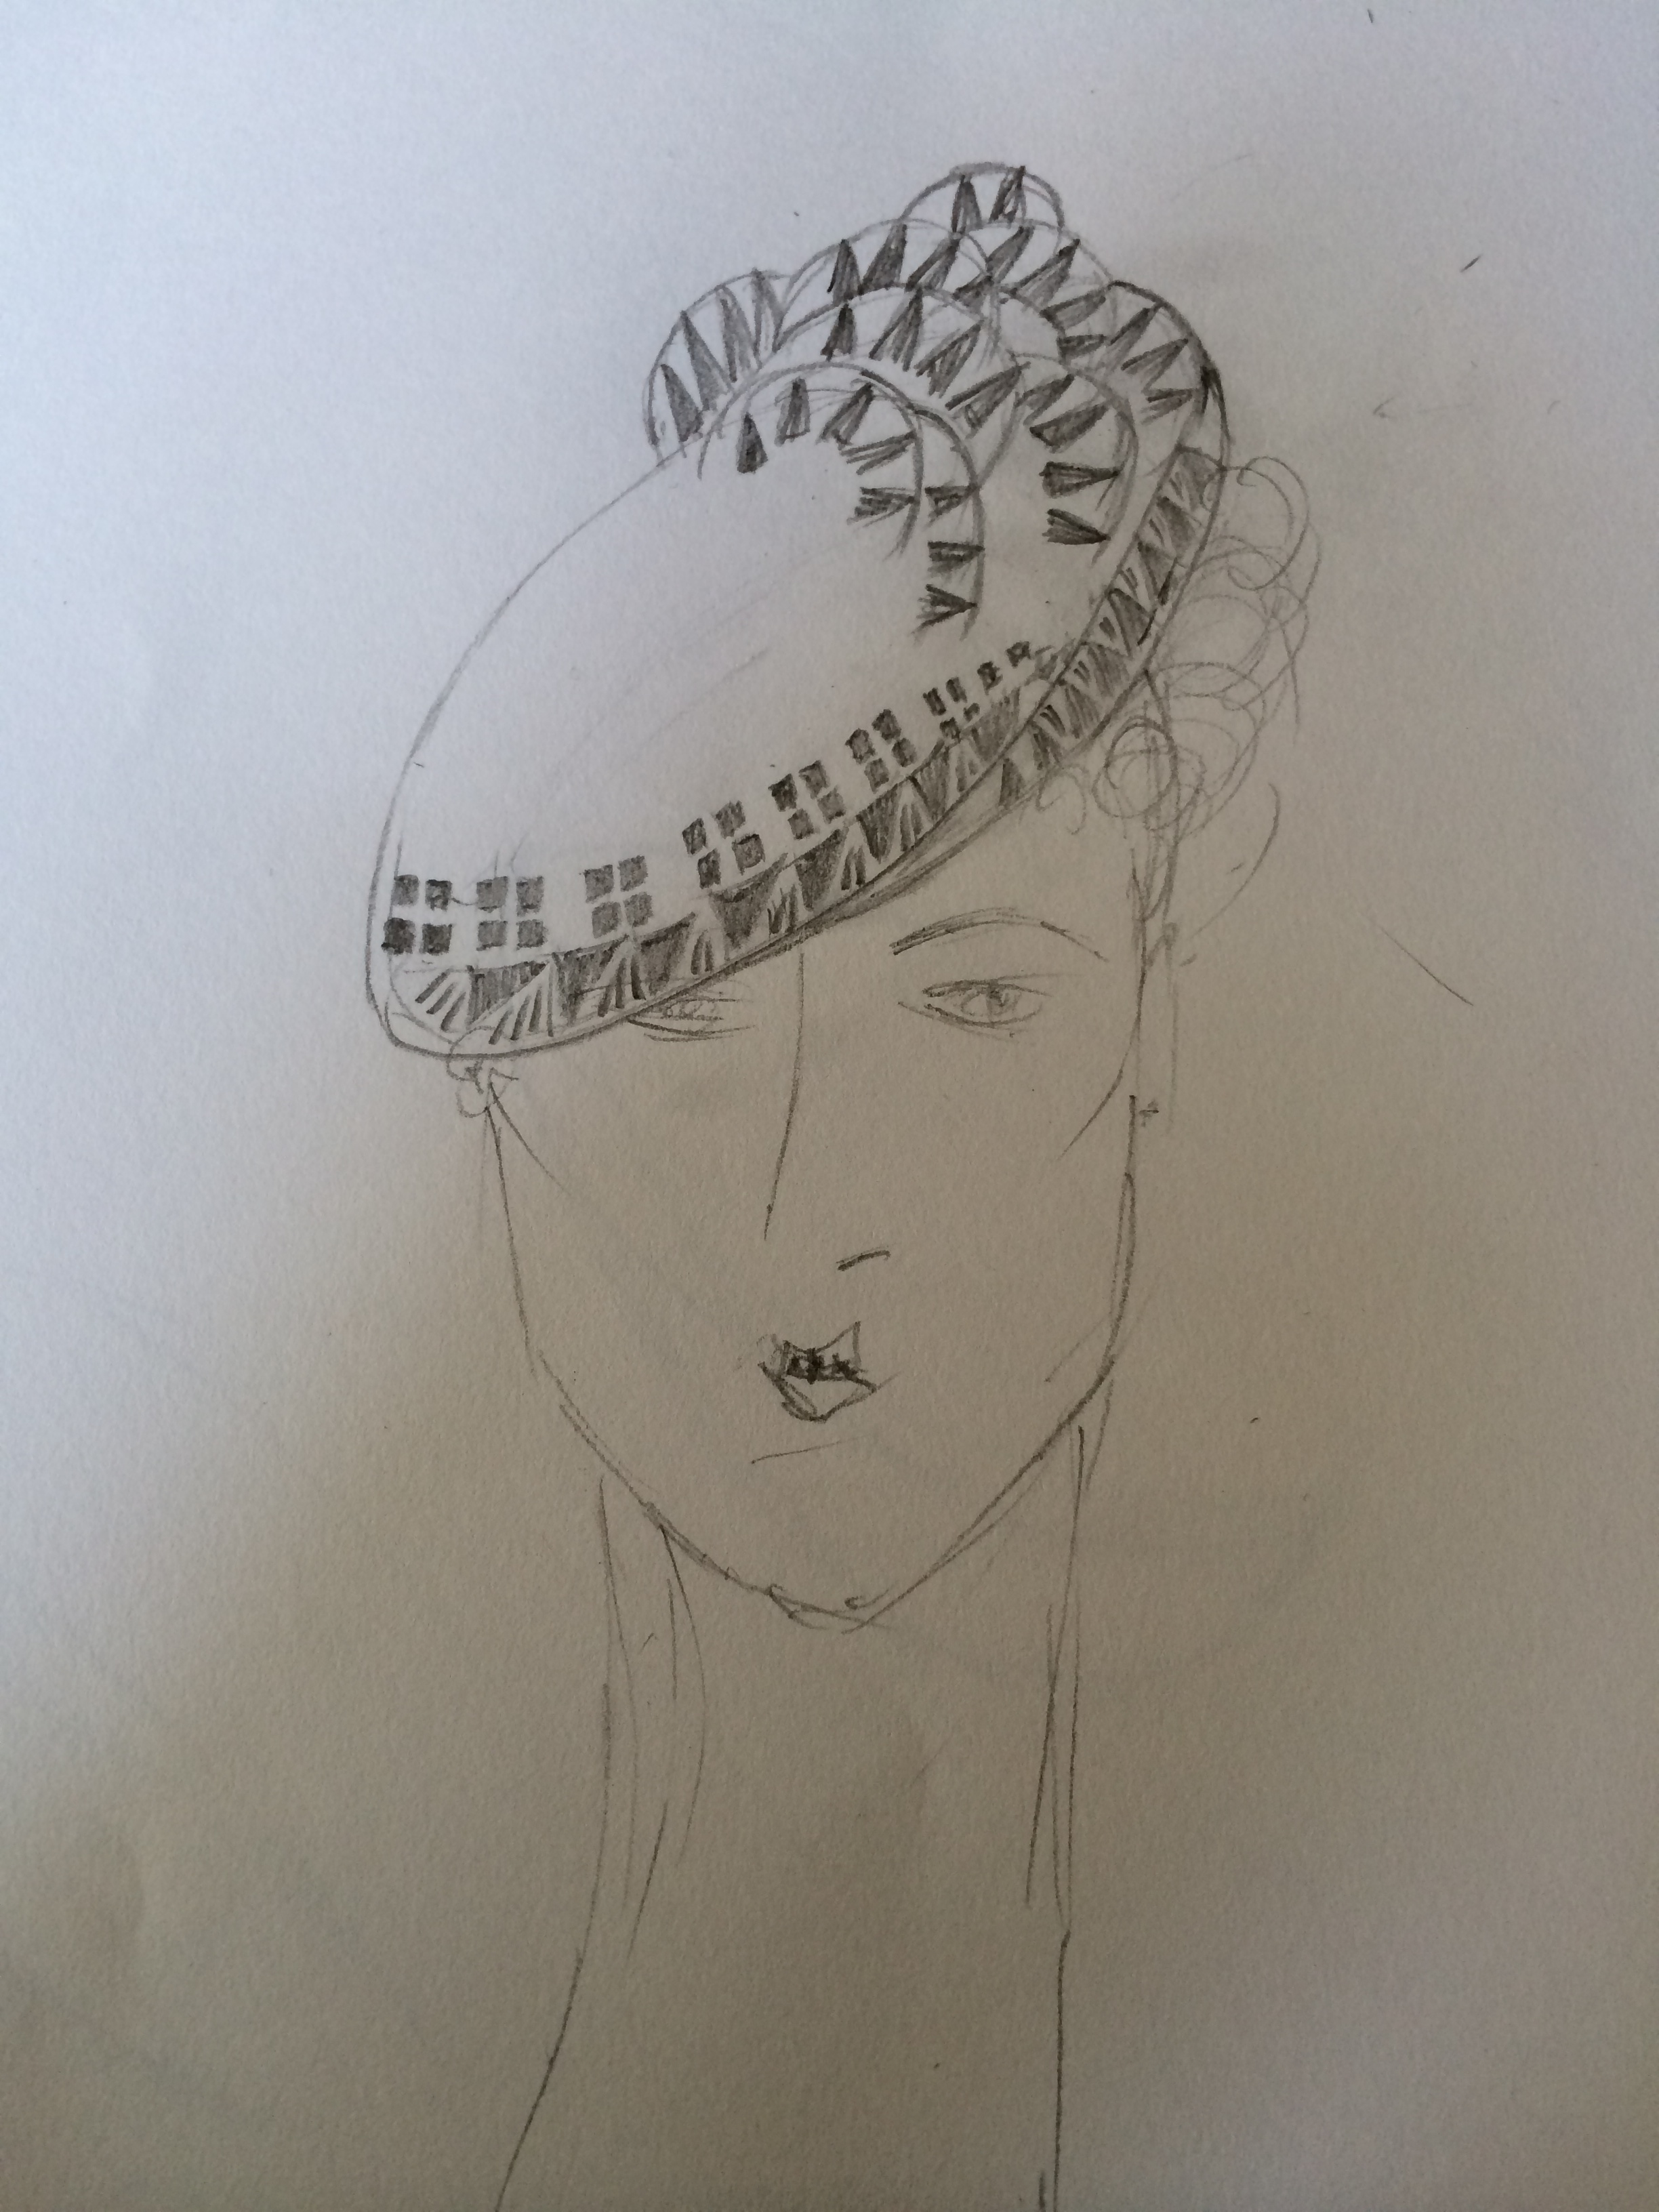 SKETCH...the original drawing of the Chrysler hat, by Boo Paterson